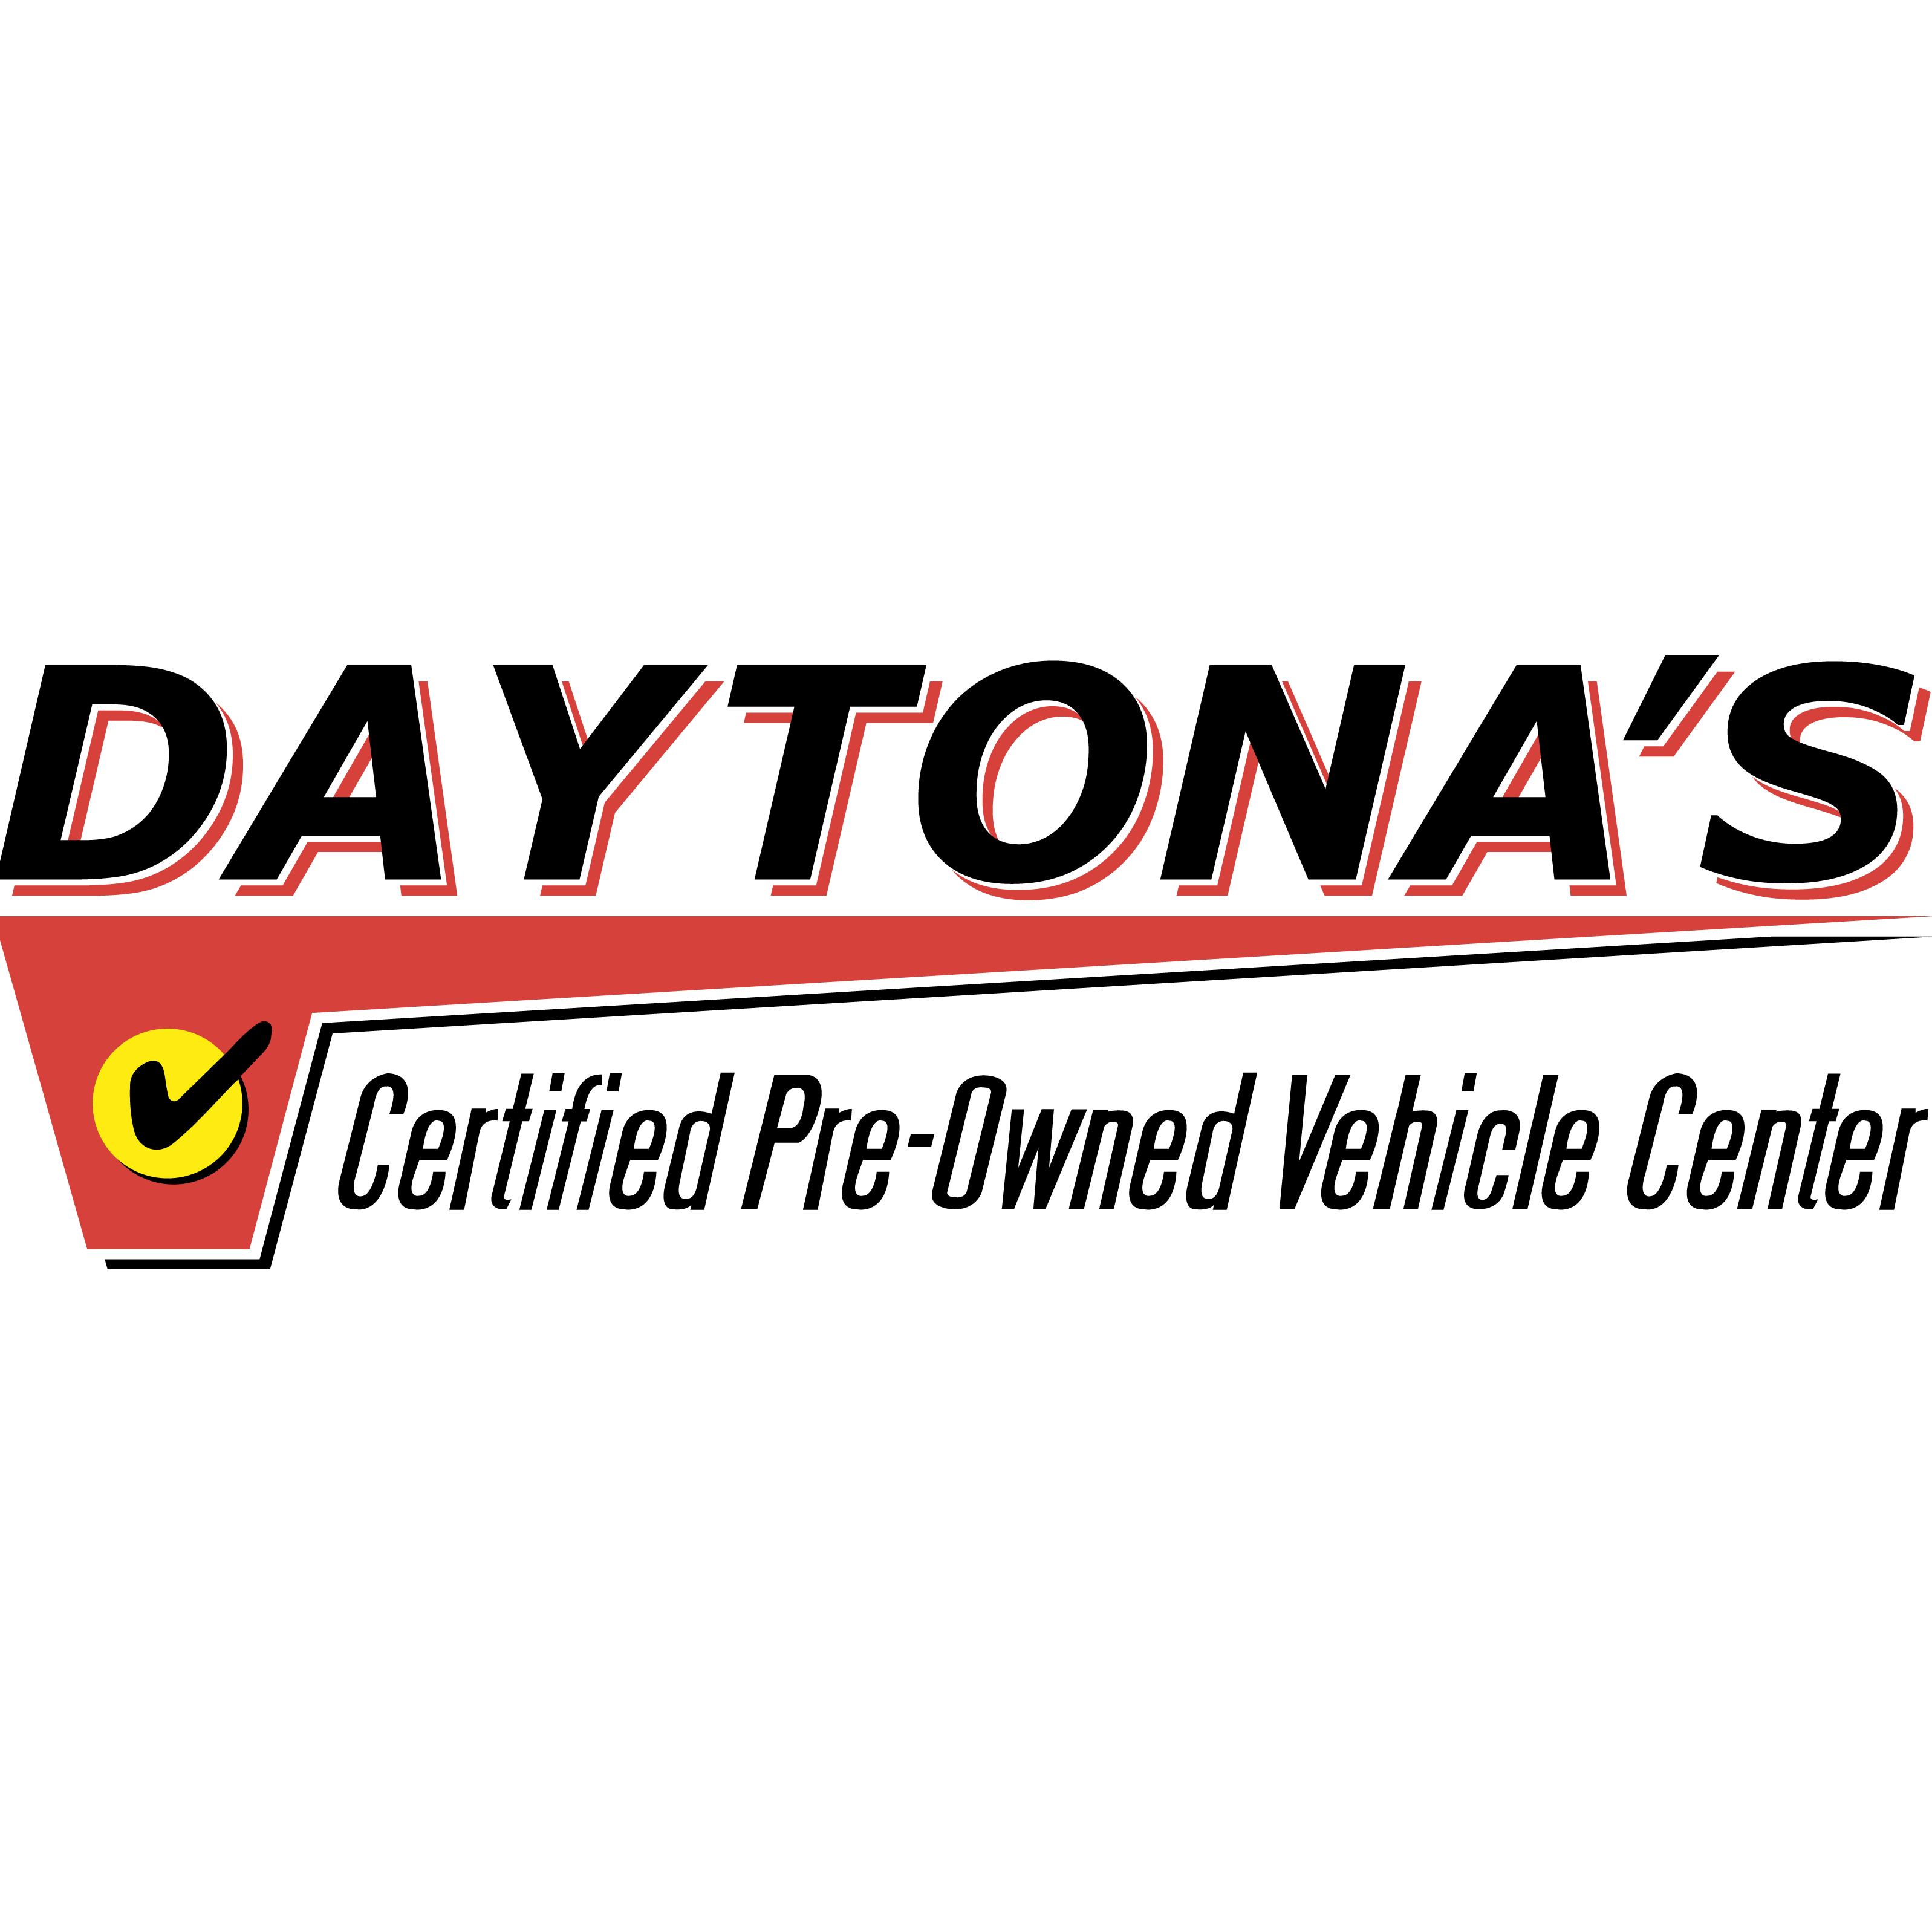 Daytona Certified Pre-Owned Vehicle Center